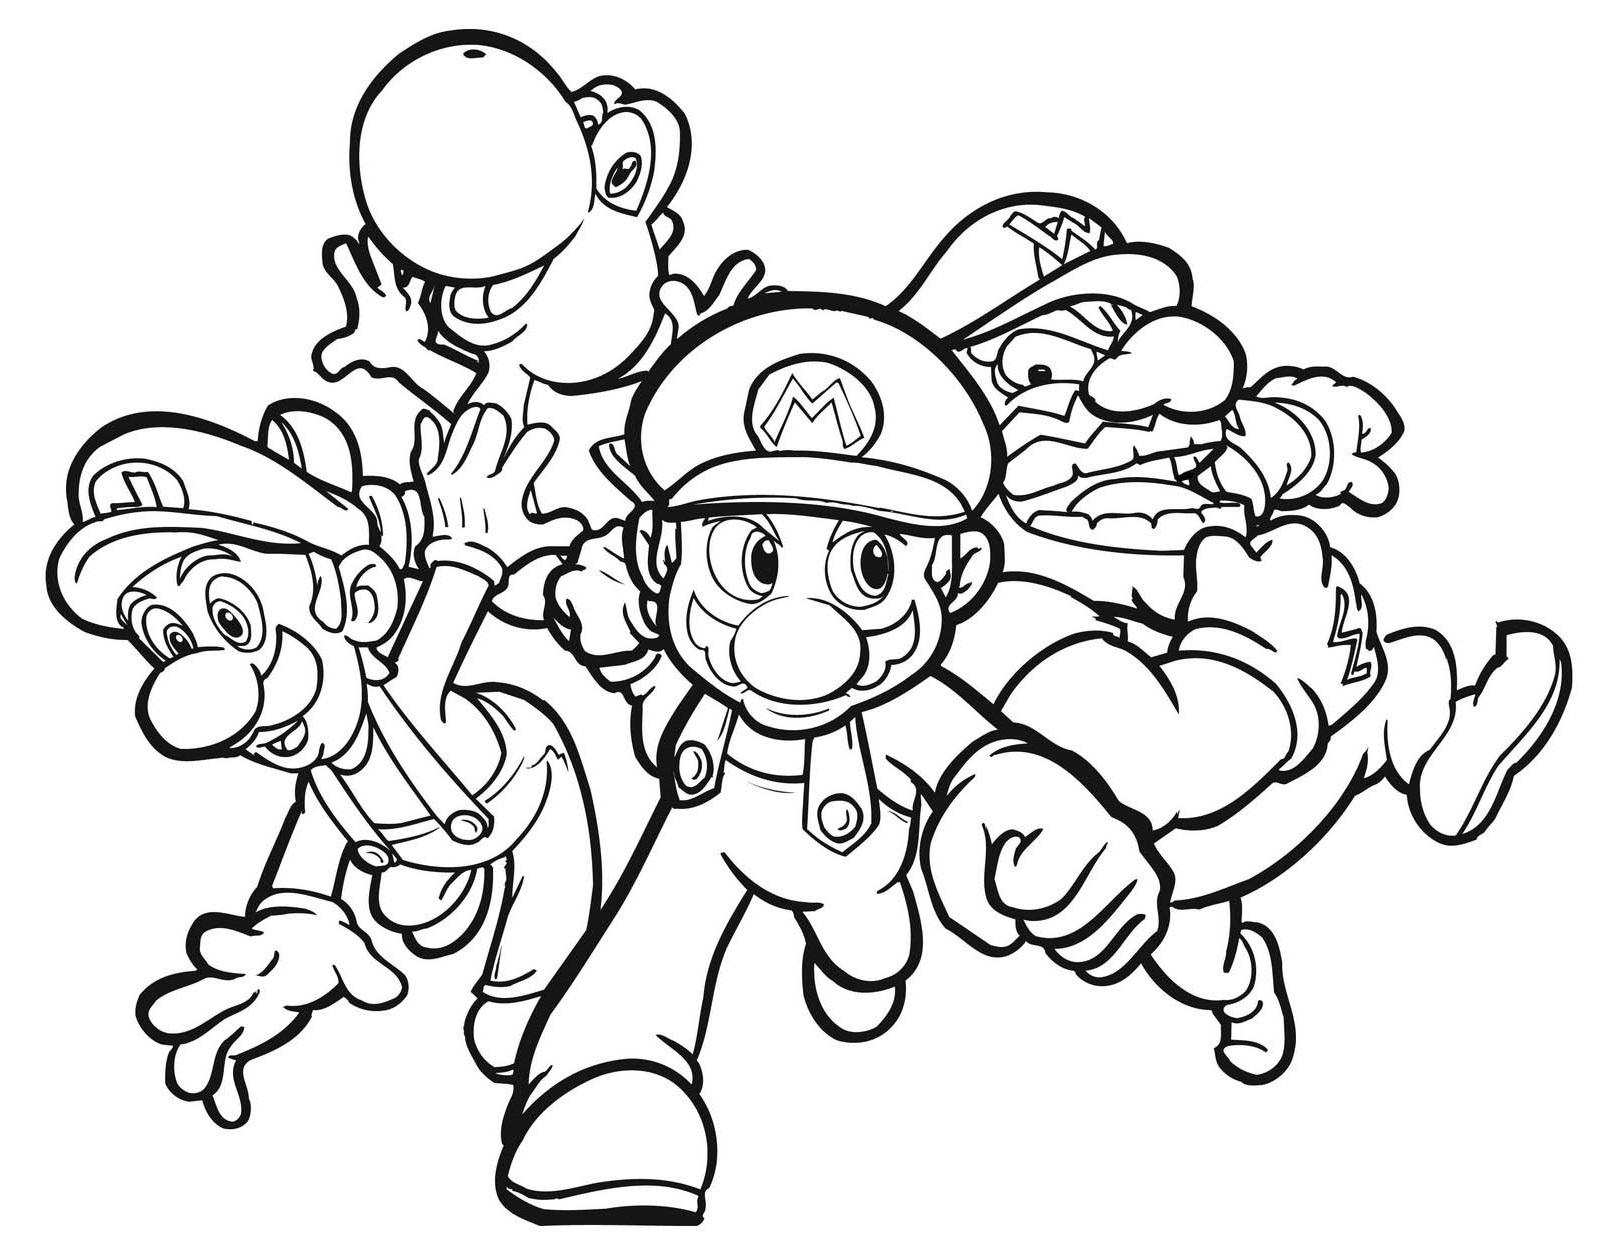 1600x1255 Fresh Robot Koopa Troopa Coloring Page Goomba Coloring Pages Free